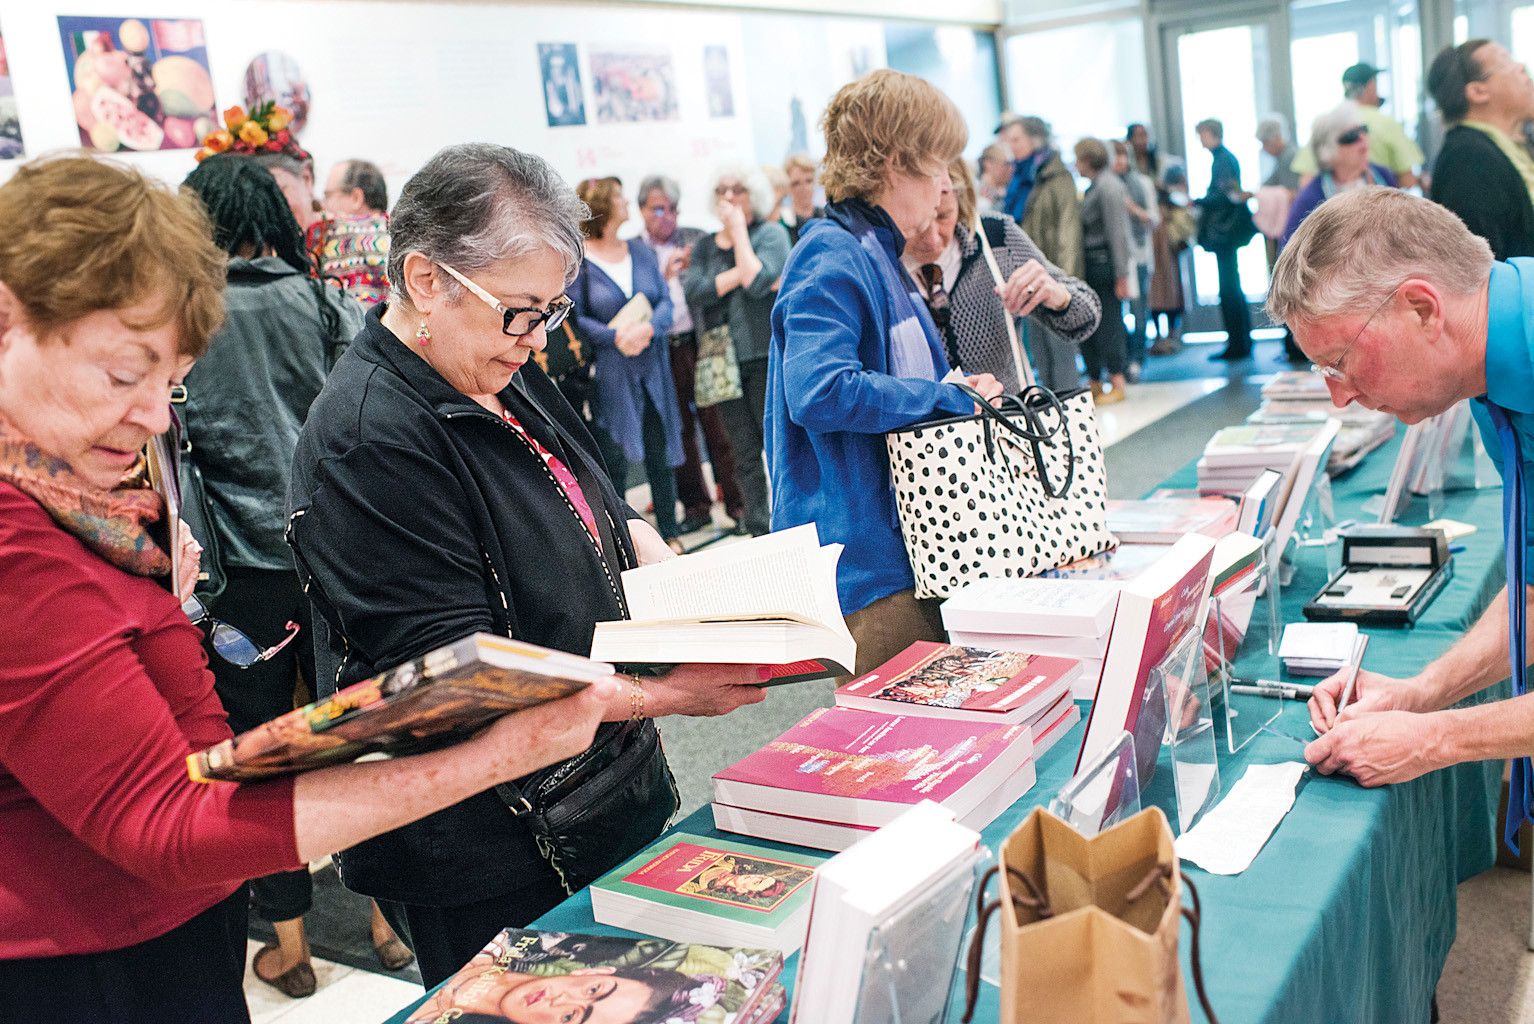 Members view the Frida Kahlo books for sale before a panel discussion on Mexican Art in the Ross Auditorium.